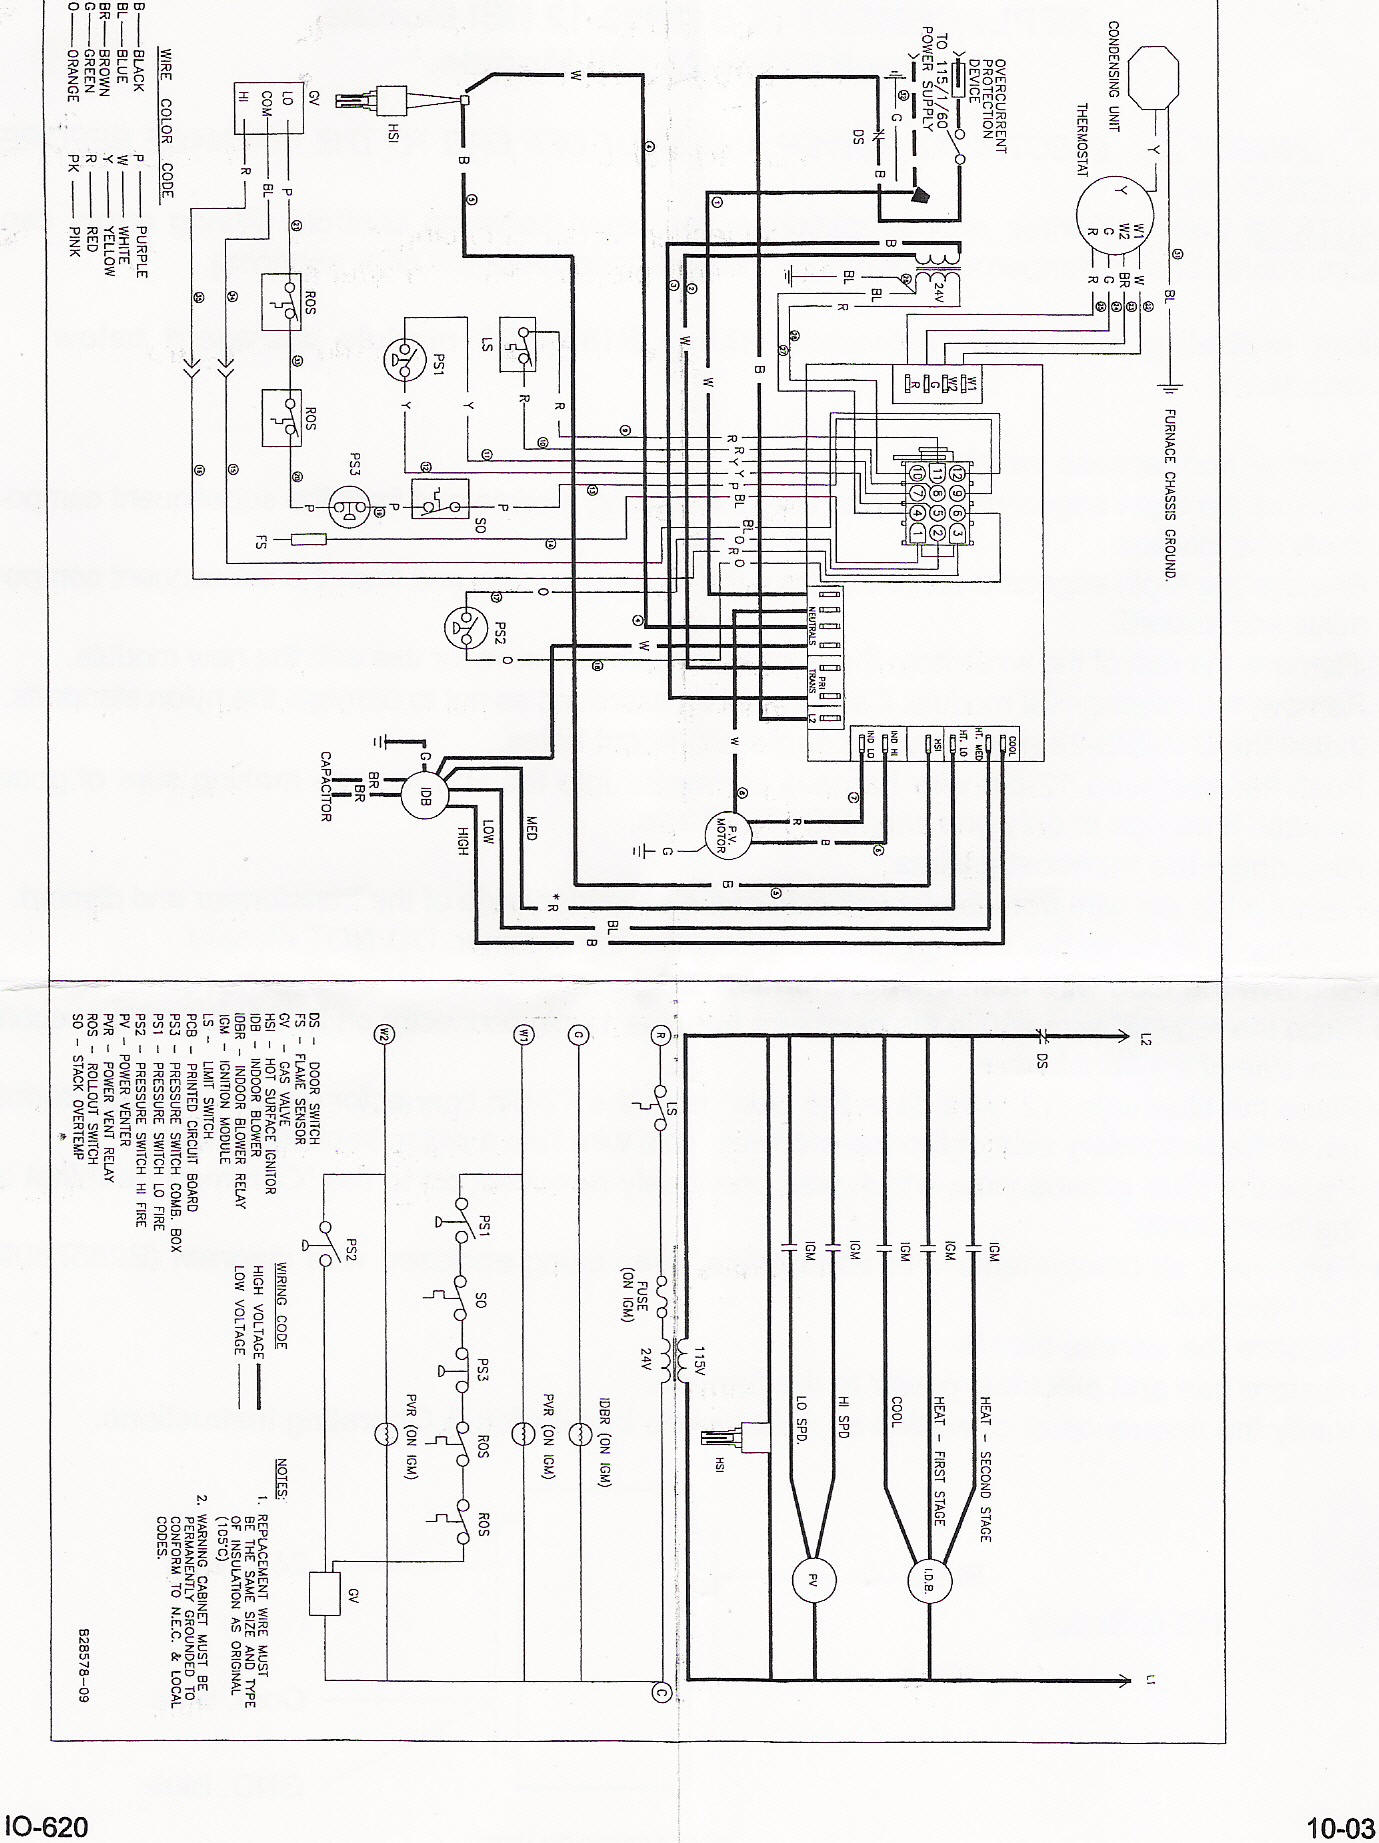 goodma2 instr goodman control board b18099 23 instructions fenwal ignition module wiring diagram at bakdesigns.co